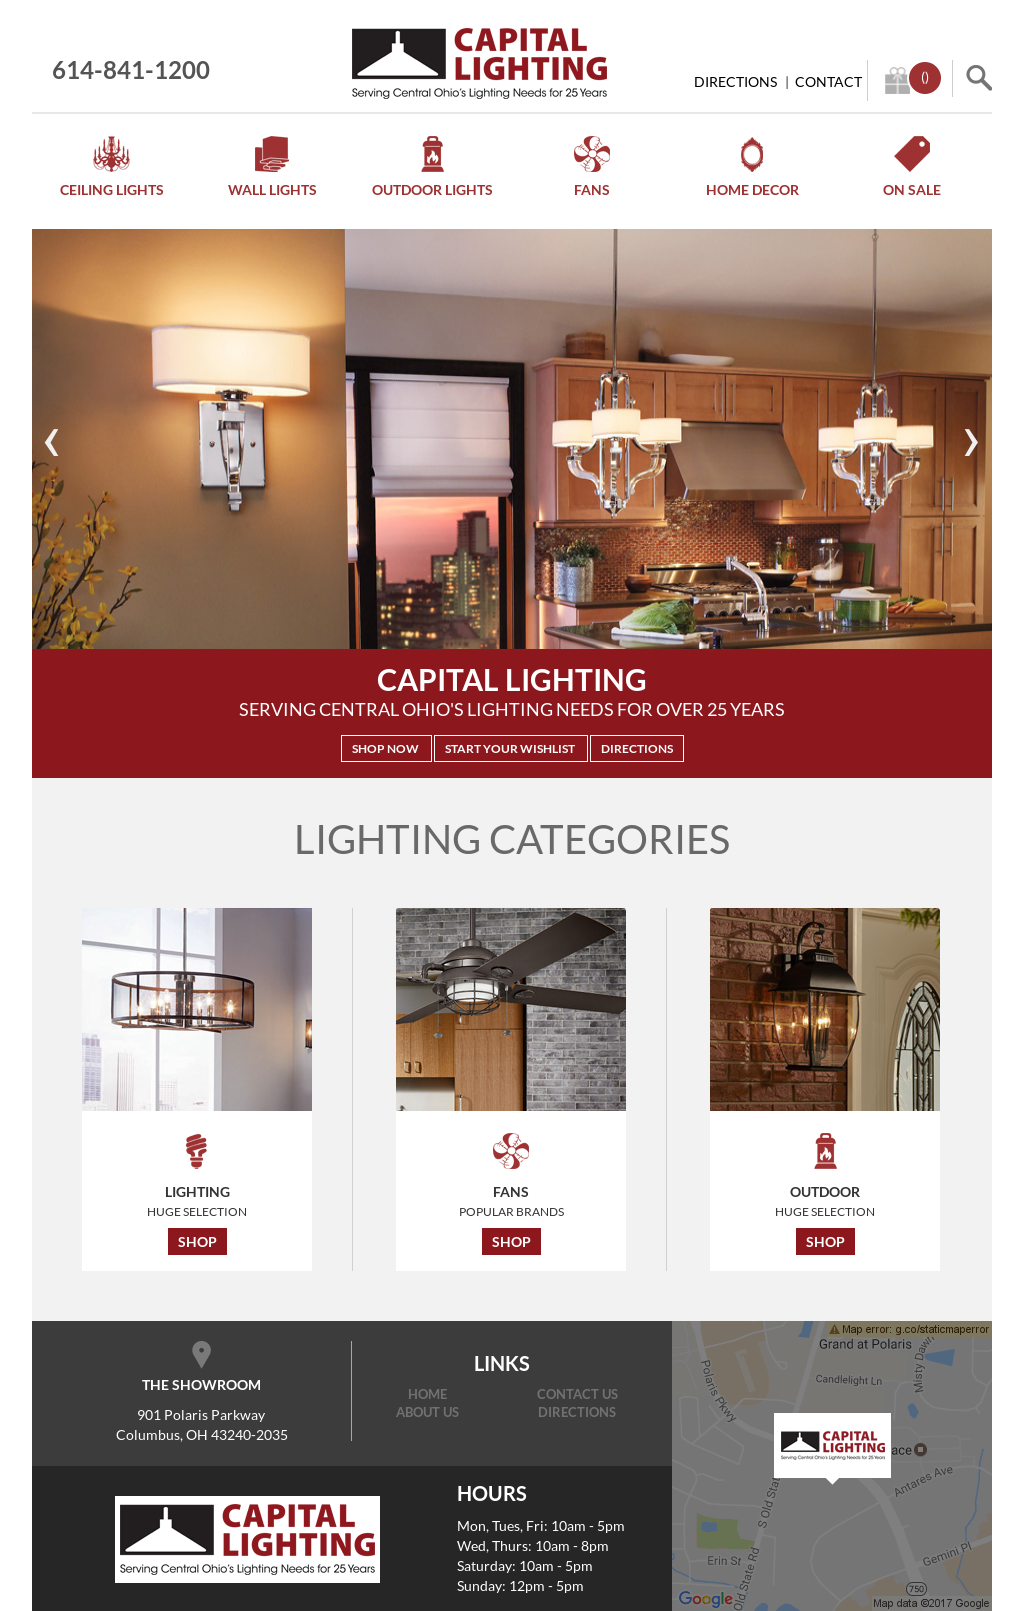 Capitallightinginc Website History